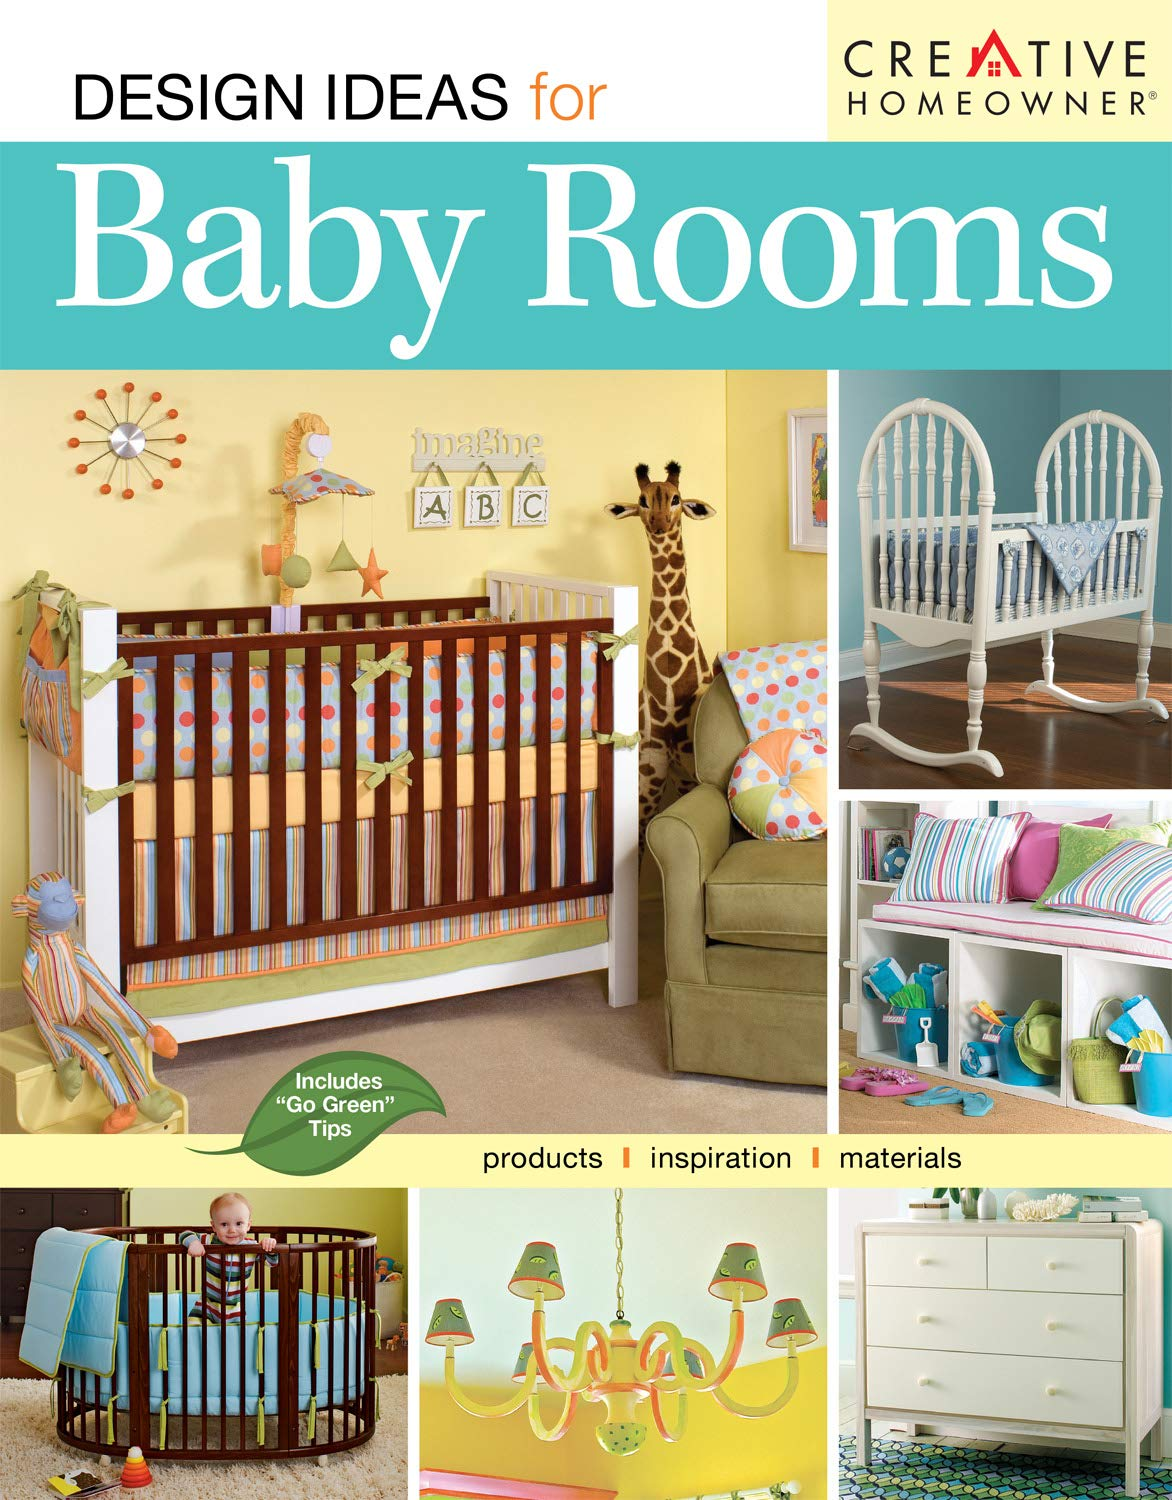 Design Ideas for Baby Rooms (Creative Homeowner) (Home Decorating